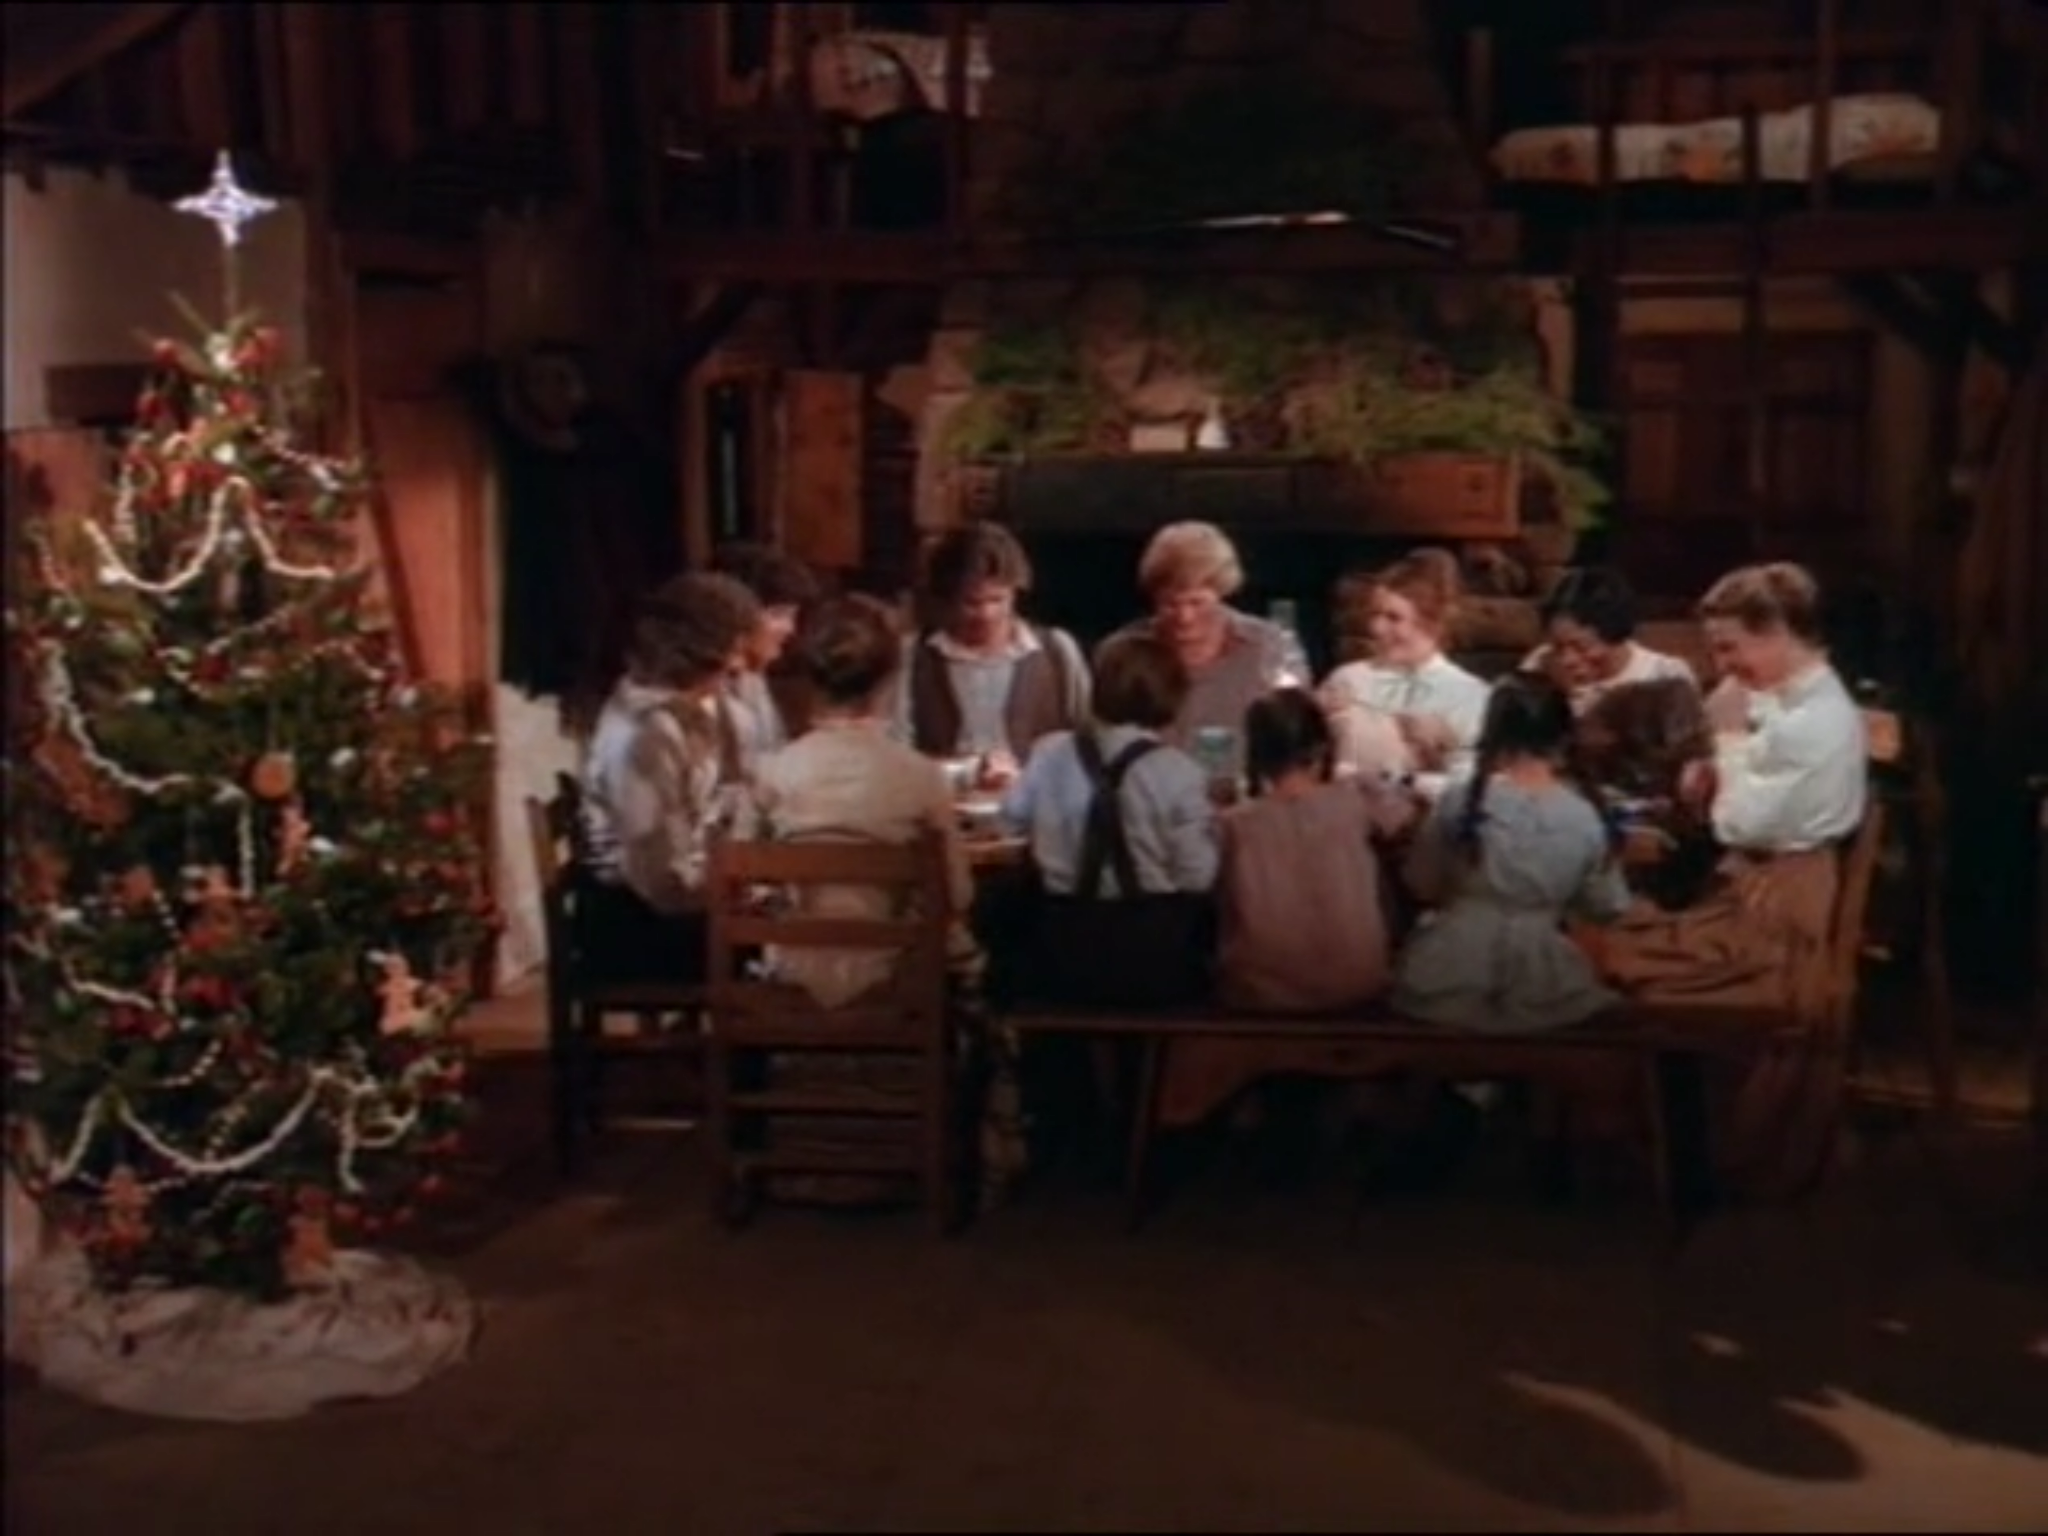 2020 Little House On The Prairie Christmas Special Pin by jacqueline smith on l in 2020 | Little house, Christmas